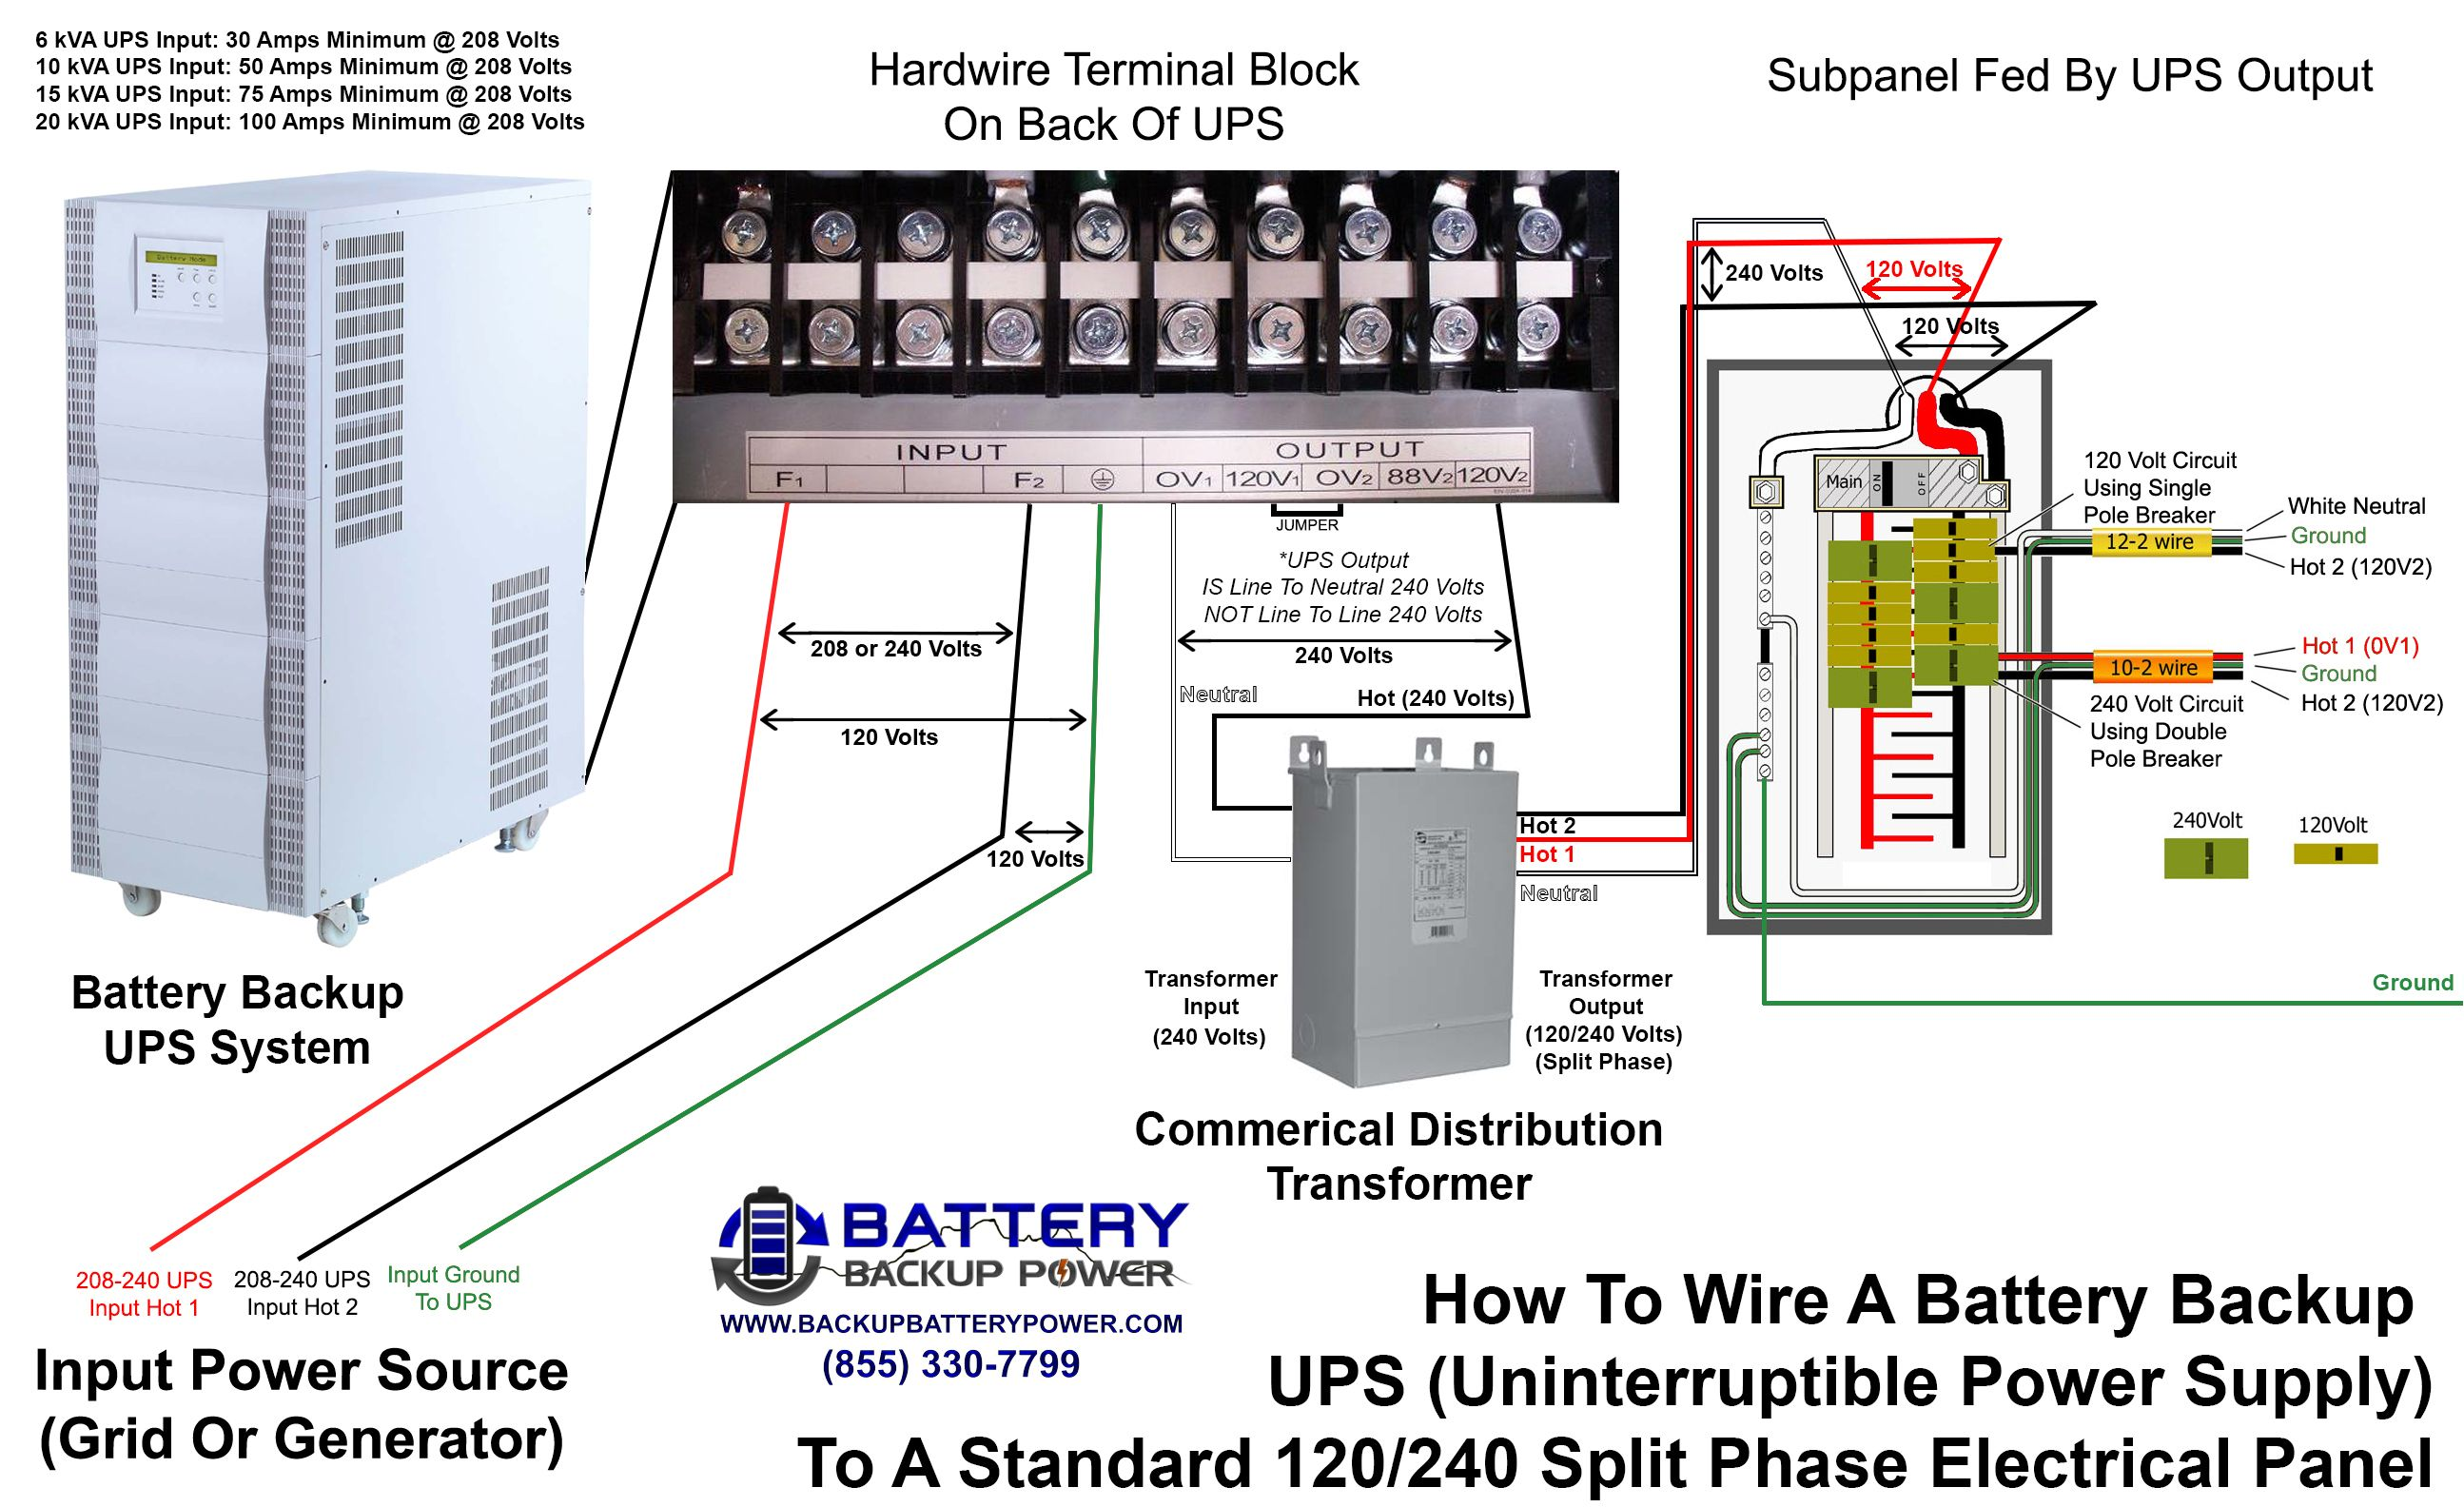 How To Wire A UPS To A Standard 120240 Split Phase Electrical Panel Diagram The Commercial